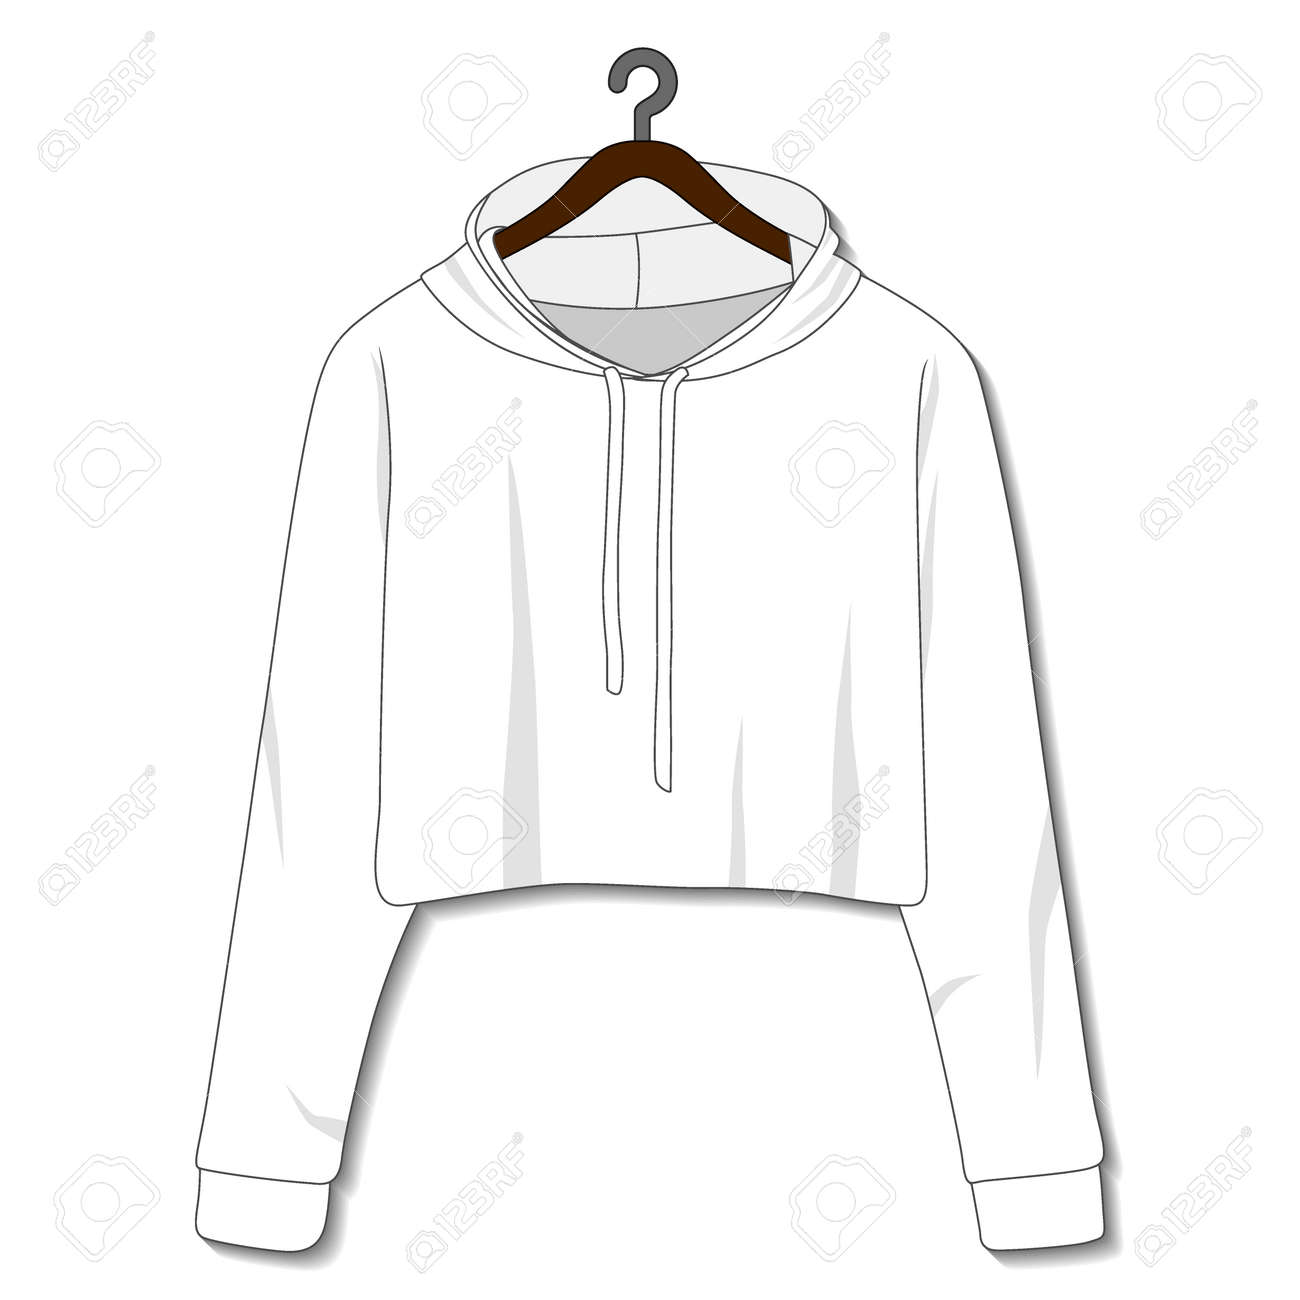 Female hoodie template isolated on a white background - 168266584